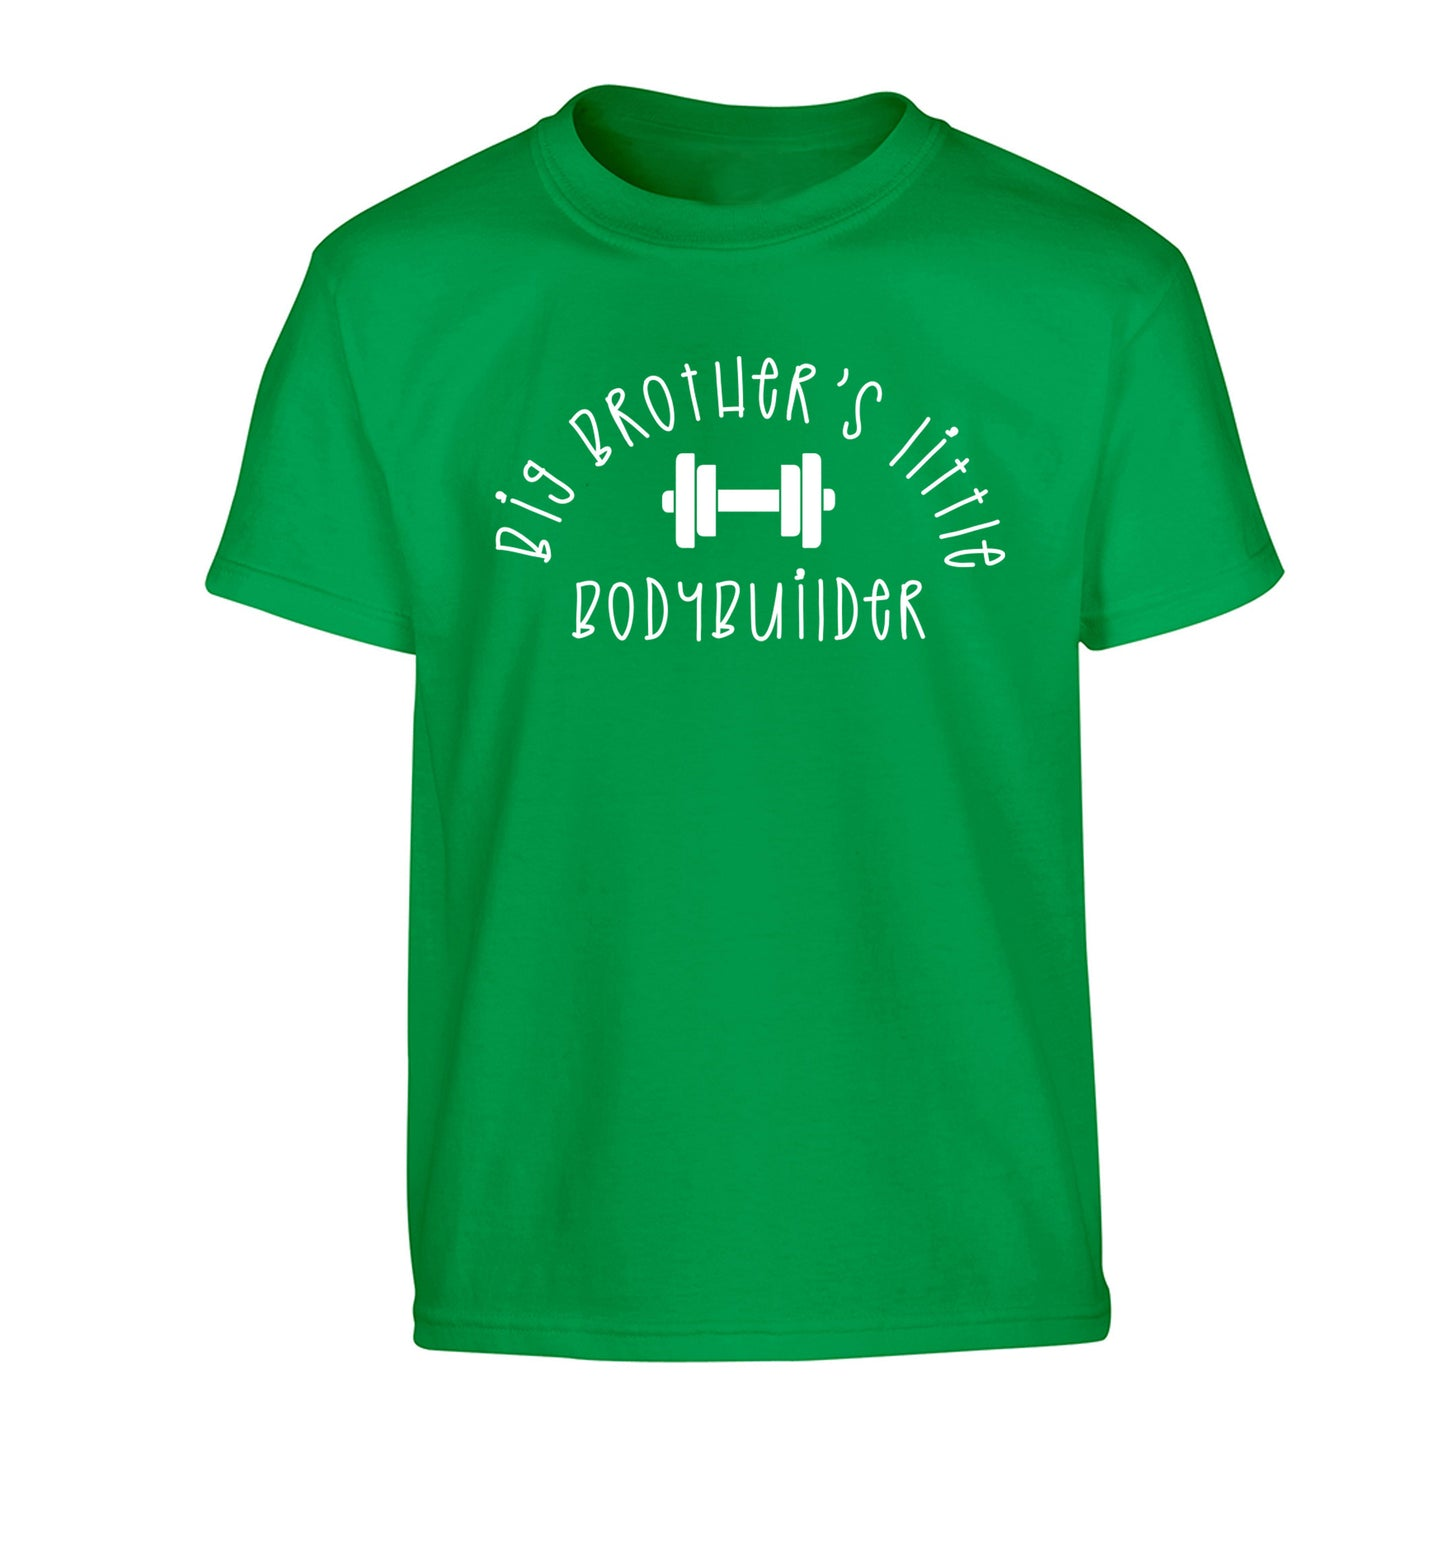 Big brother's little bodybuilder Children's green Tshirt 12-14 Years